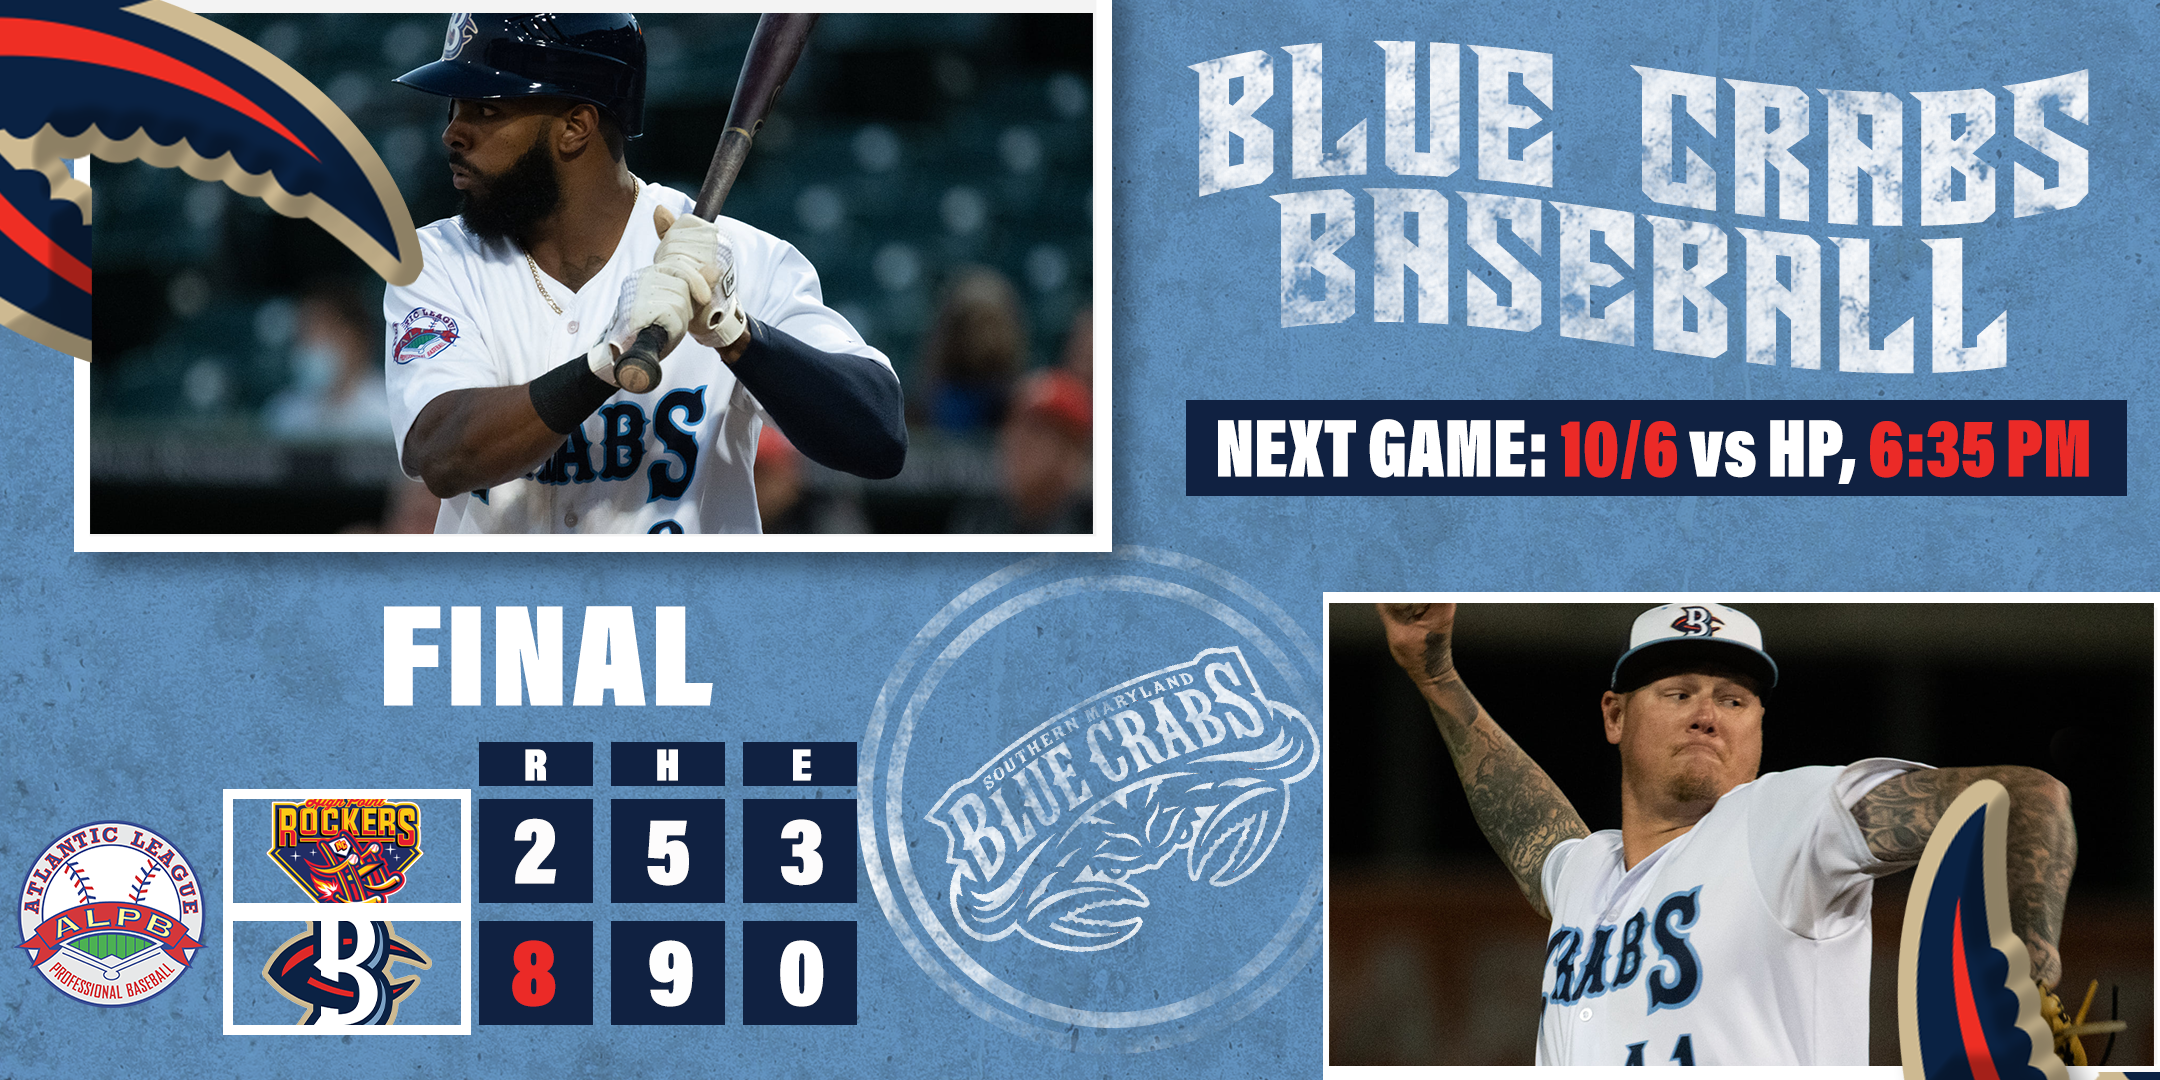 Blue Crabs Early Runs too Much for Rockers in 8-2 Win